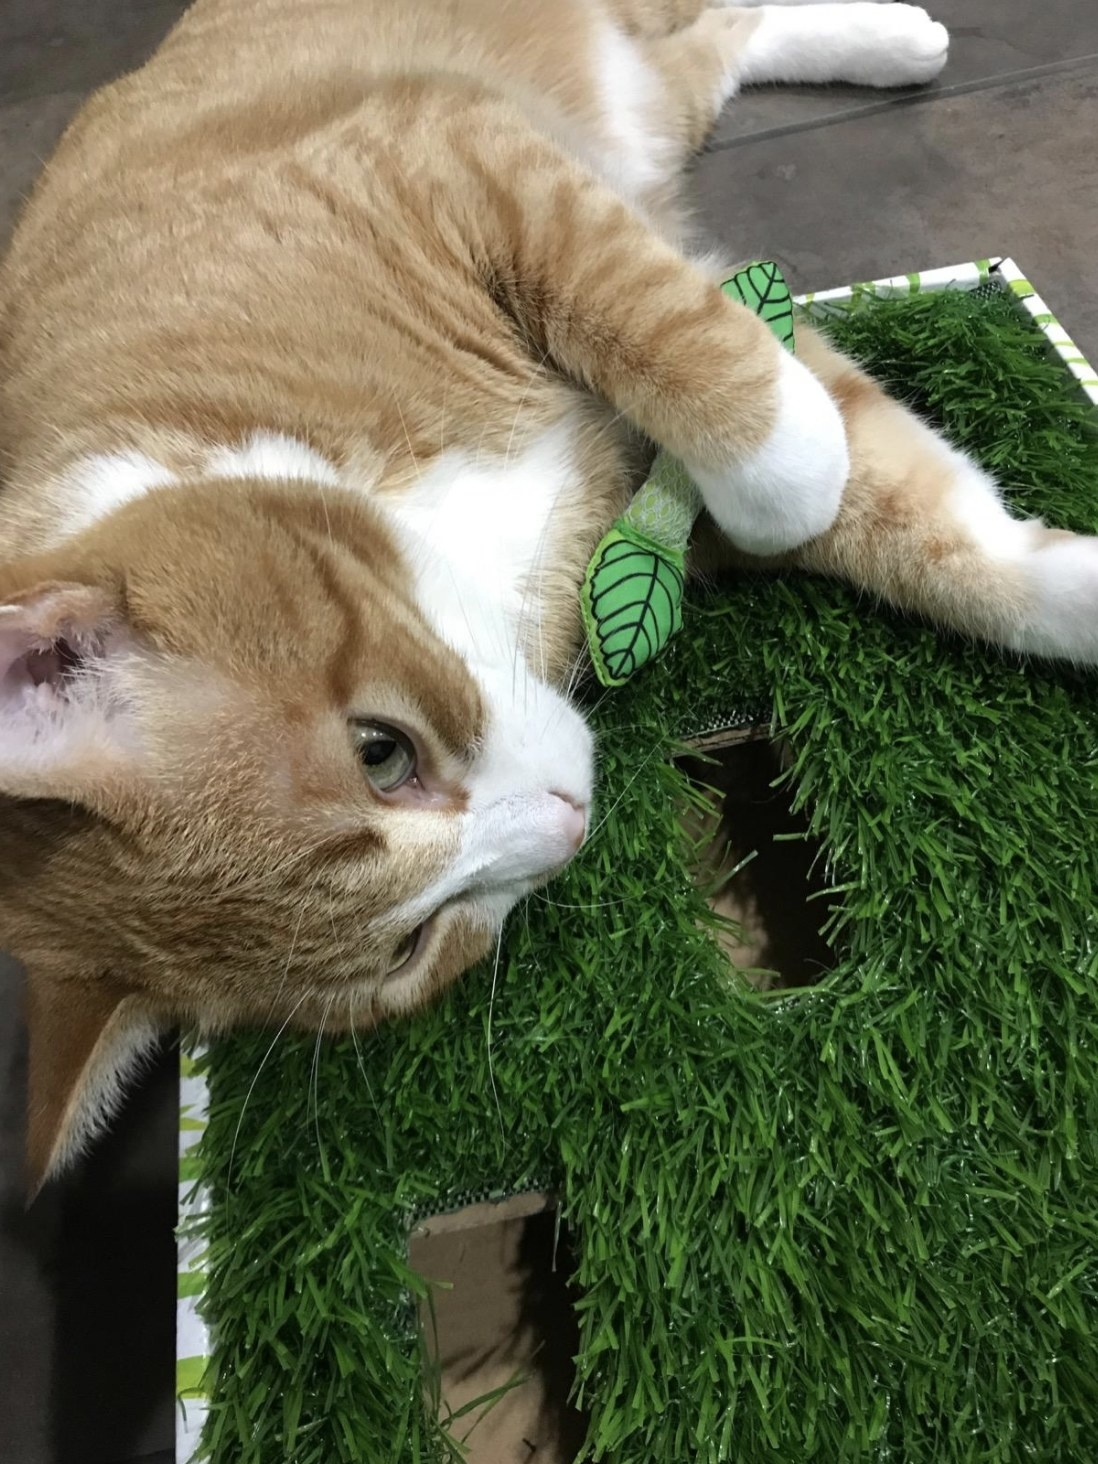 a cat laying on the grass scratcher